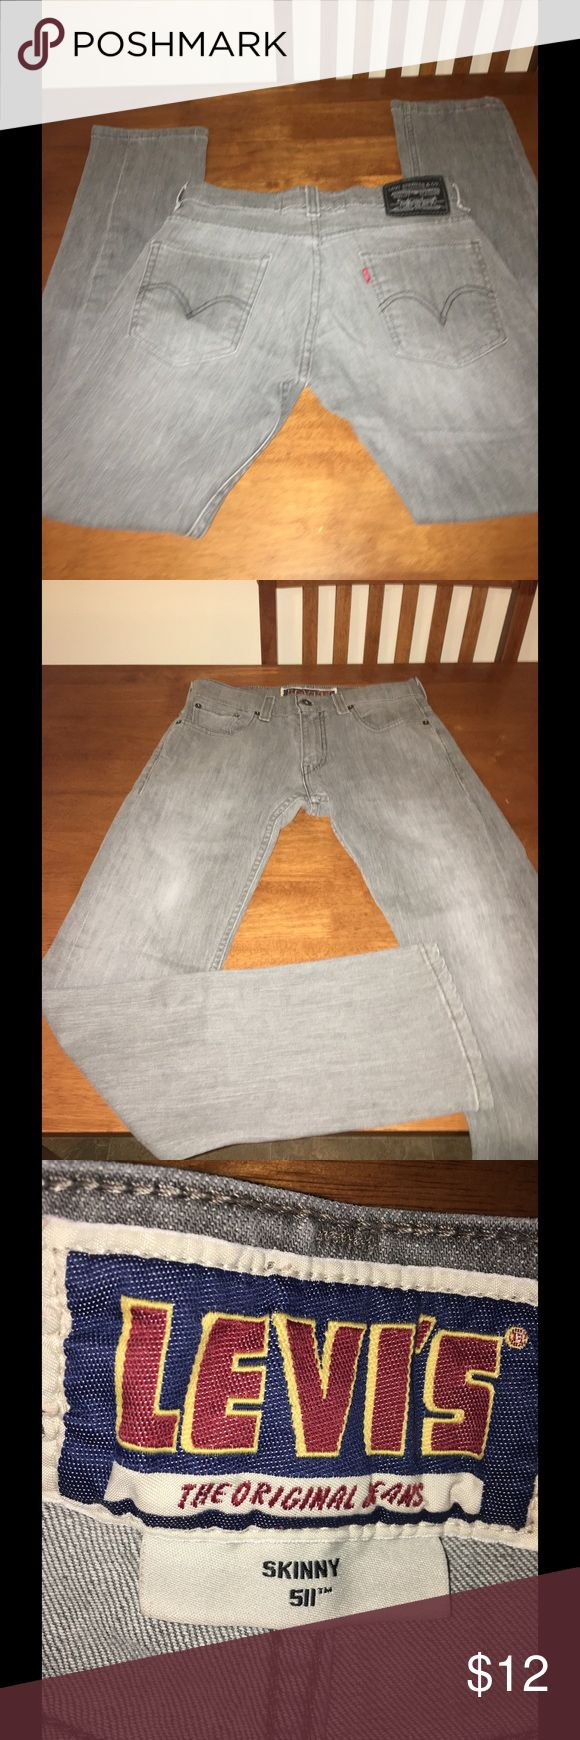 Mens Levis 511 Skinny Grey Jeans 30x30 Light grey men's jeans.  Levis 512 skinny style. Size 30x30.  Great condition.   Important:   All items are freshly laundered as applicable prior to shipping (new items and shoes excluded).  Not all my items are from pet/smoke free homes.  Price is reduced to reflect this!   Thank you for looking! Levi's Jeans Skinny